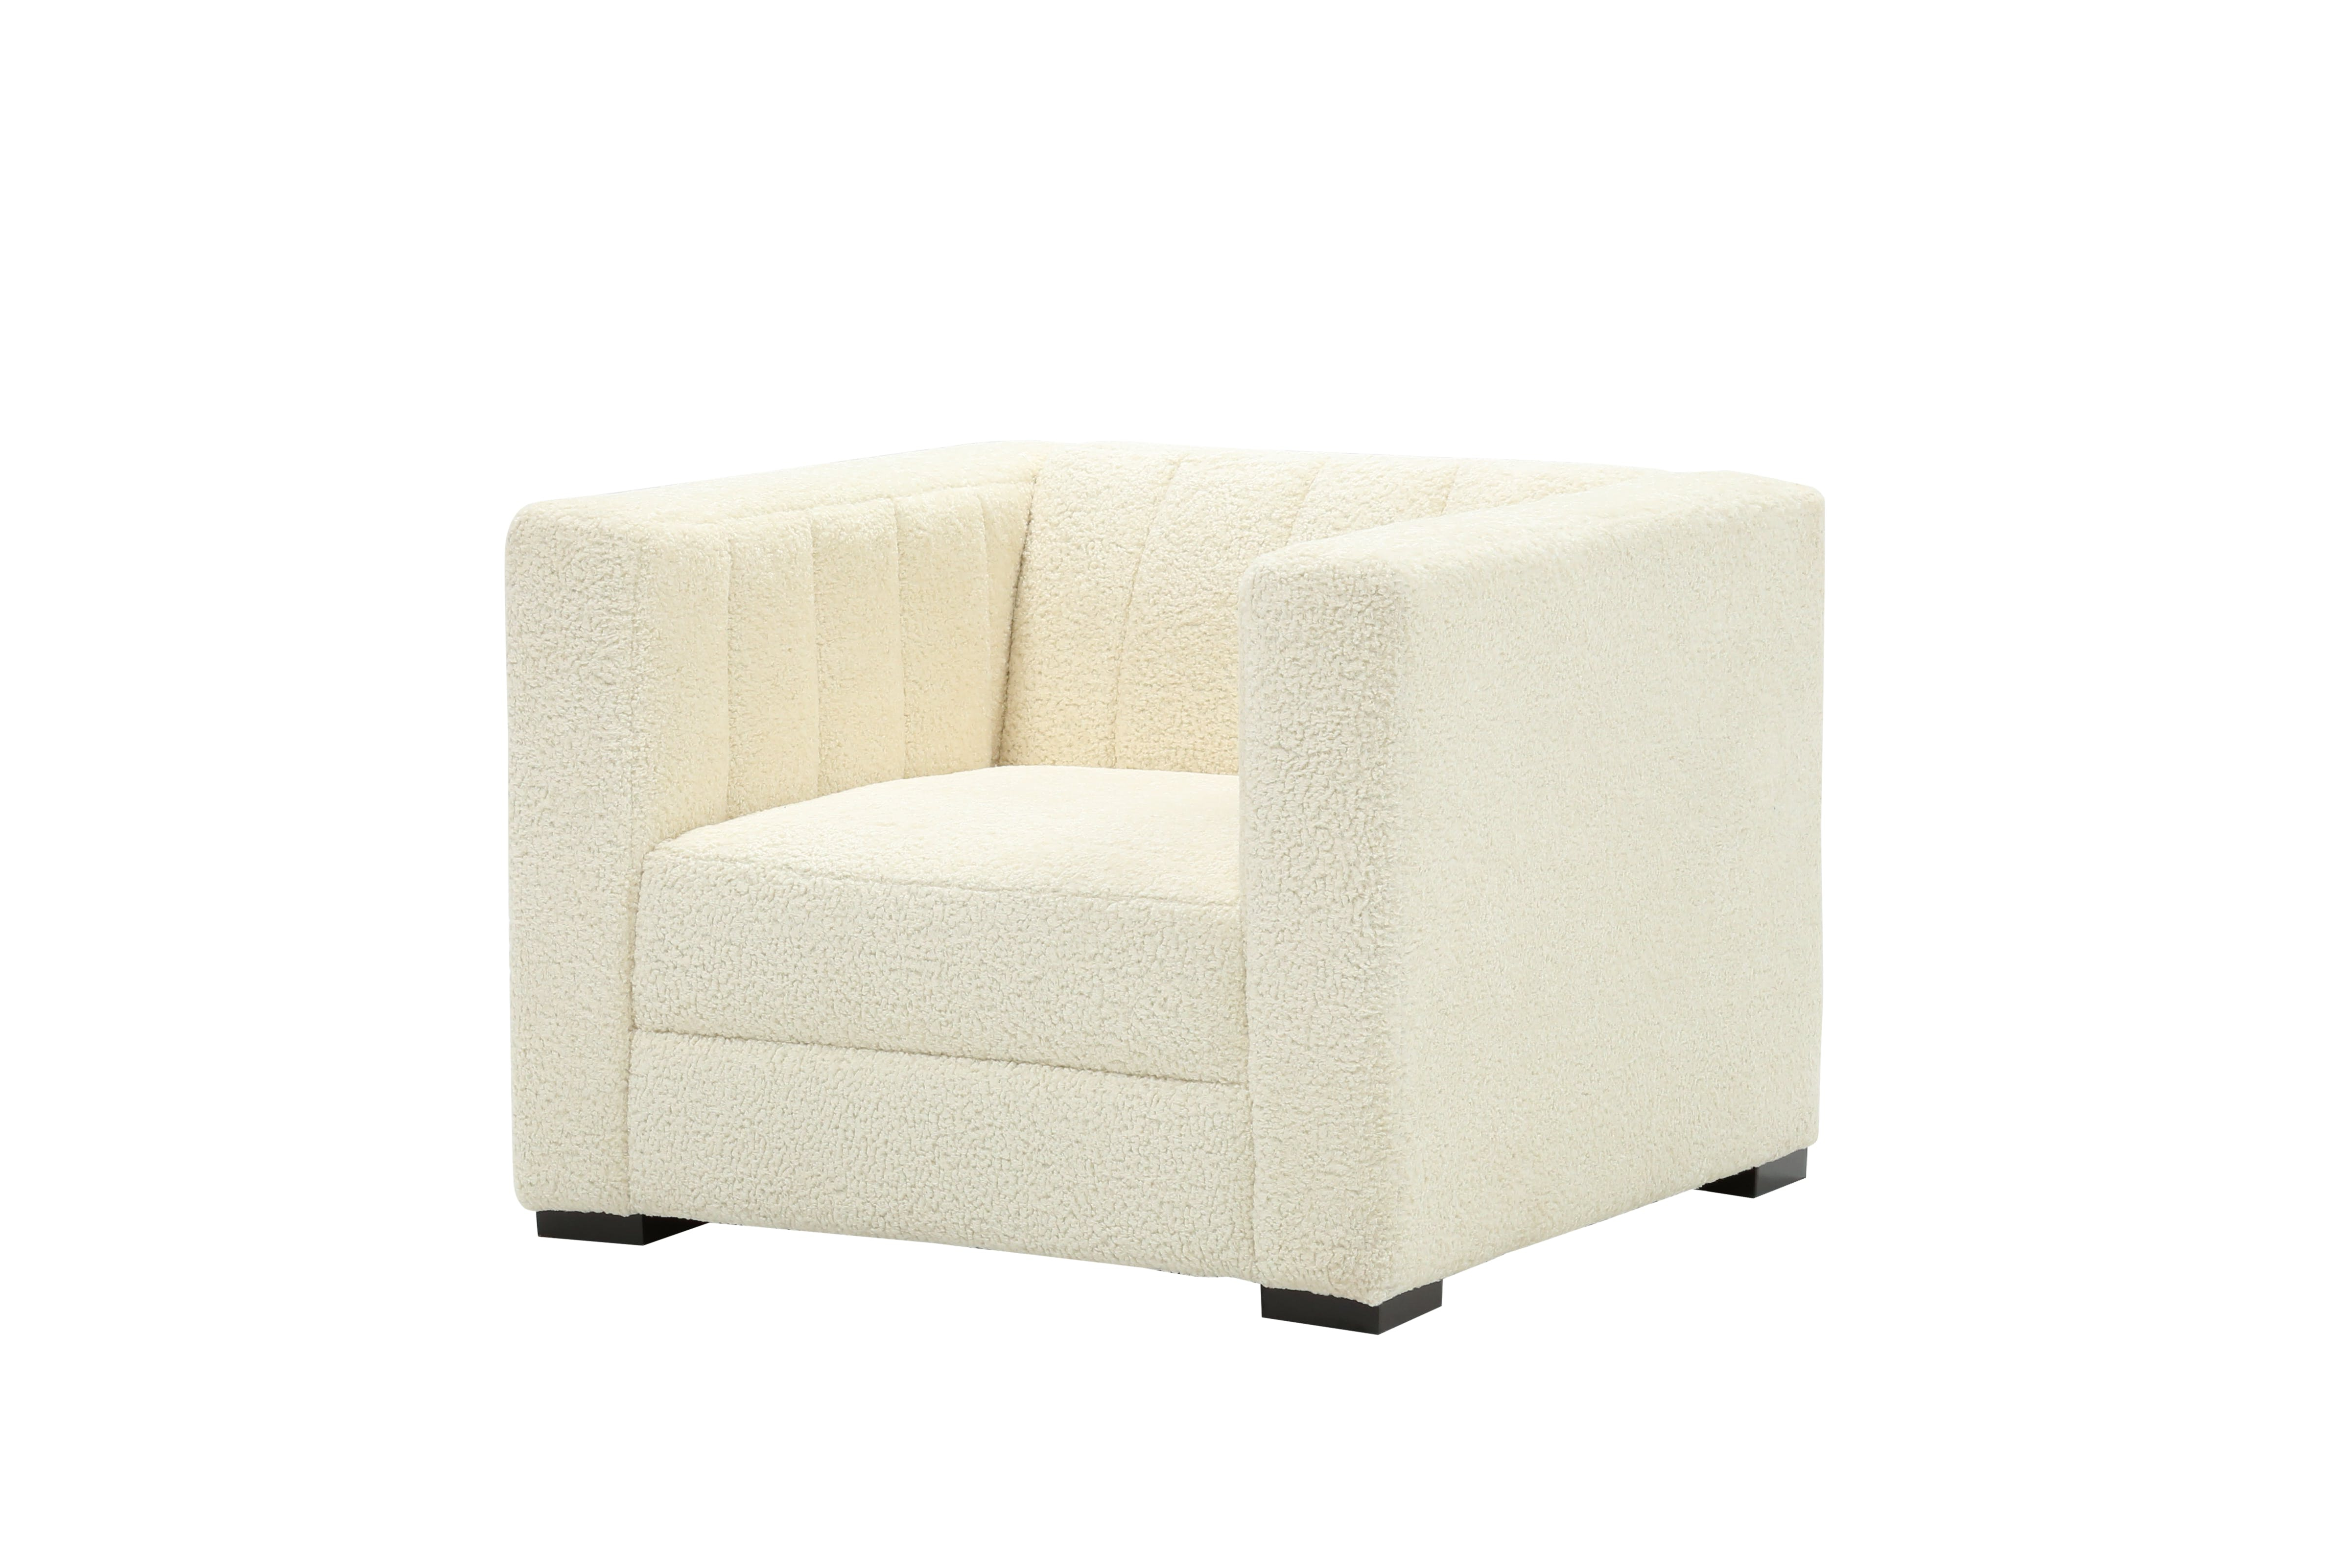 2019 Liv Arm Sofa Chairs Inside Nate Berkus Just Launched A Home Collection With Hubby Jeremiah (Gallery 12 of 20)